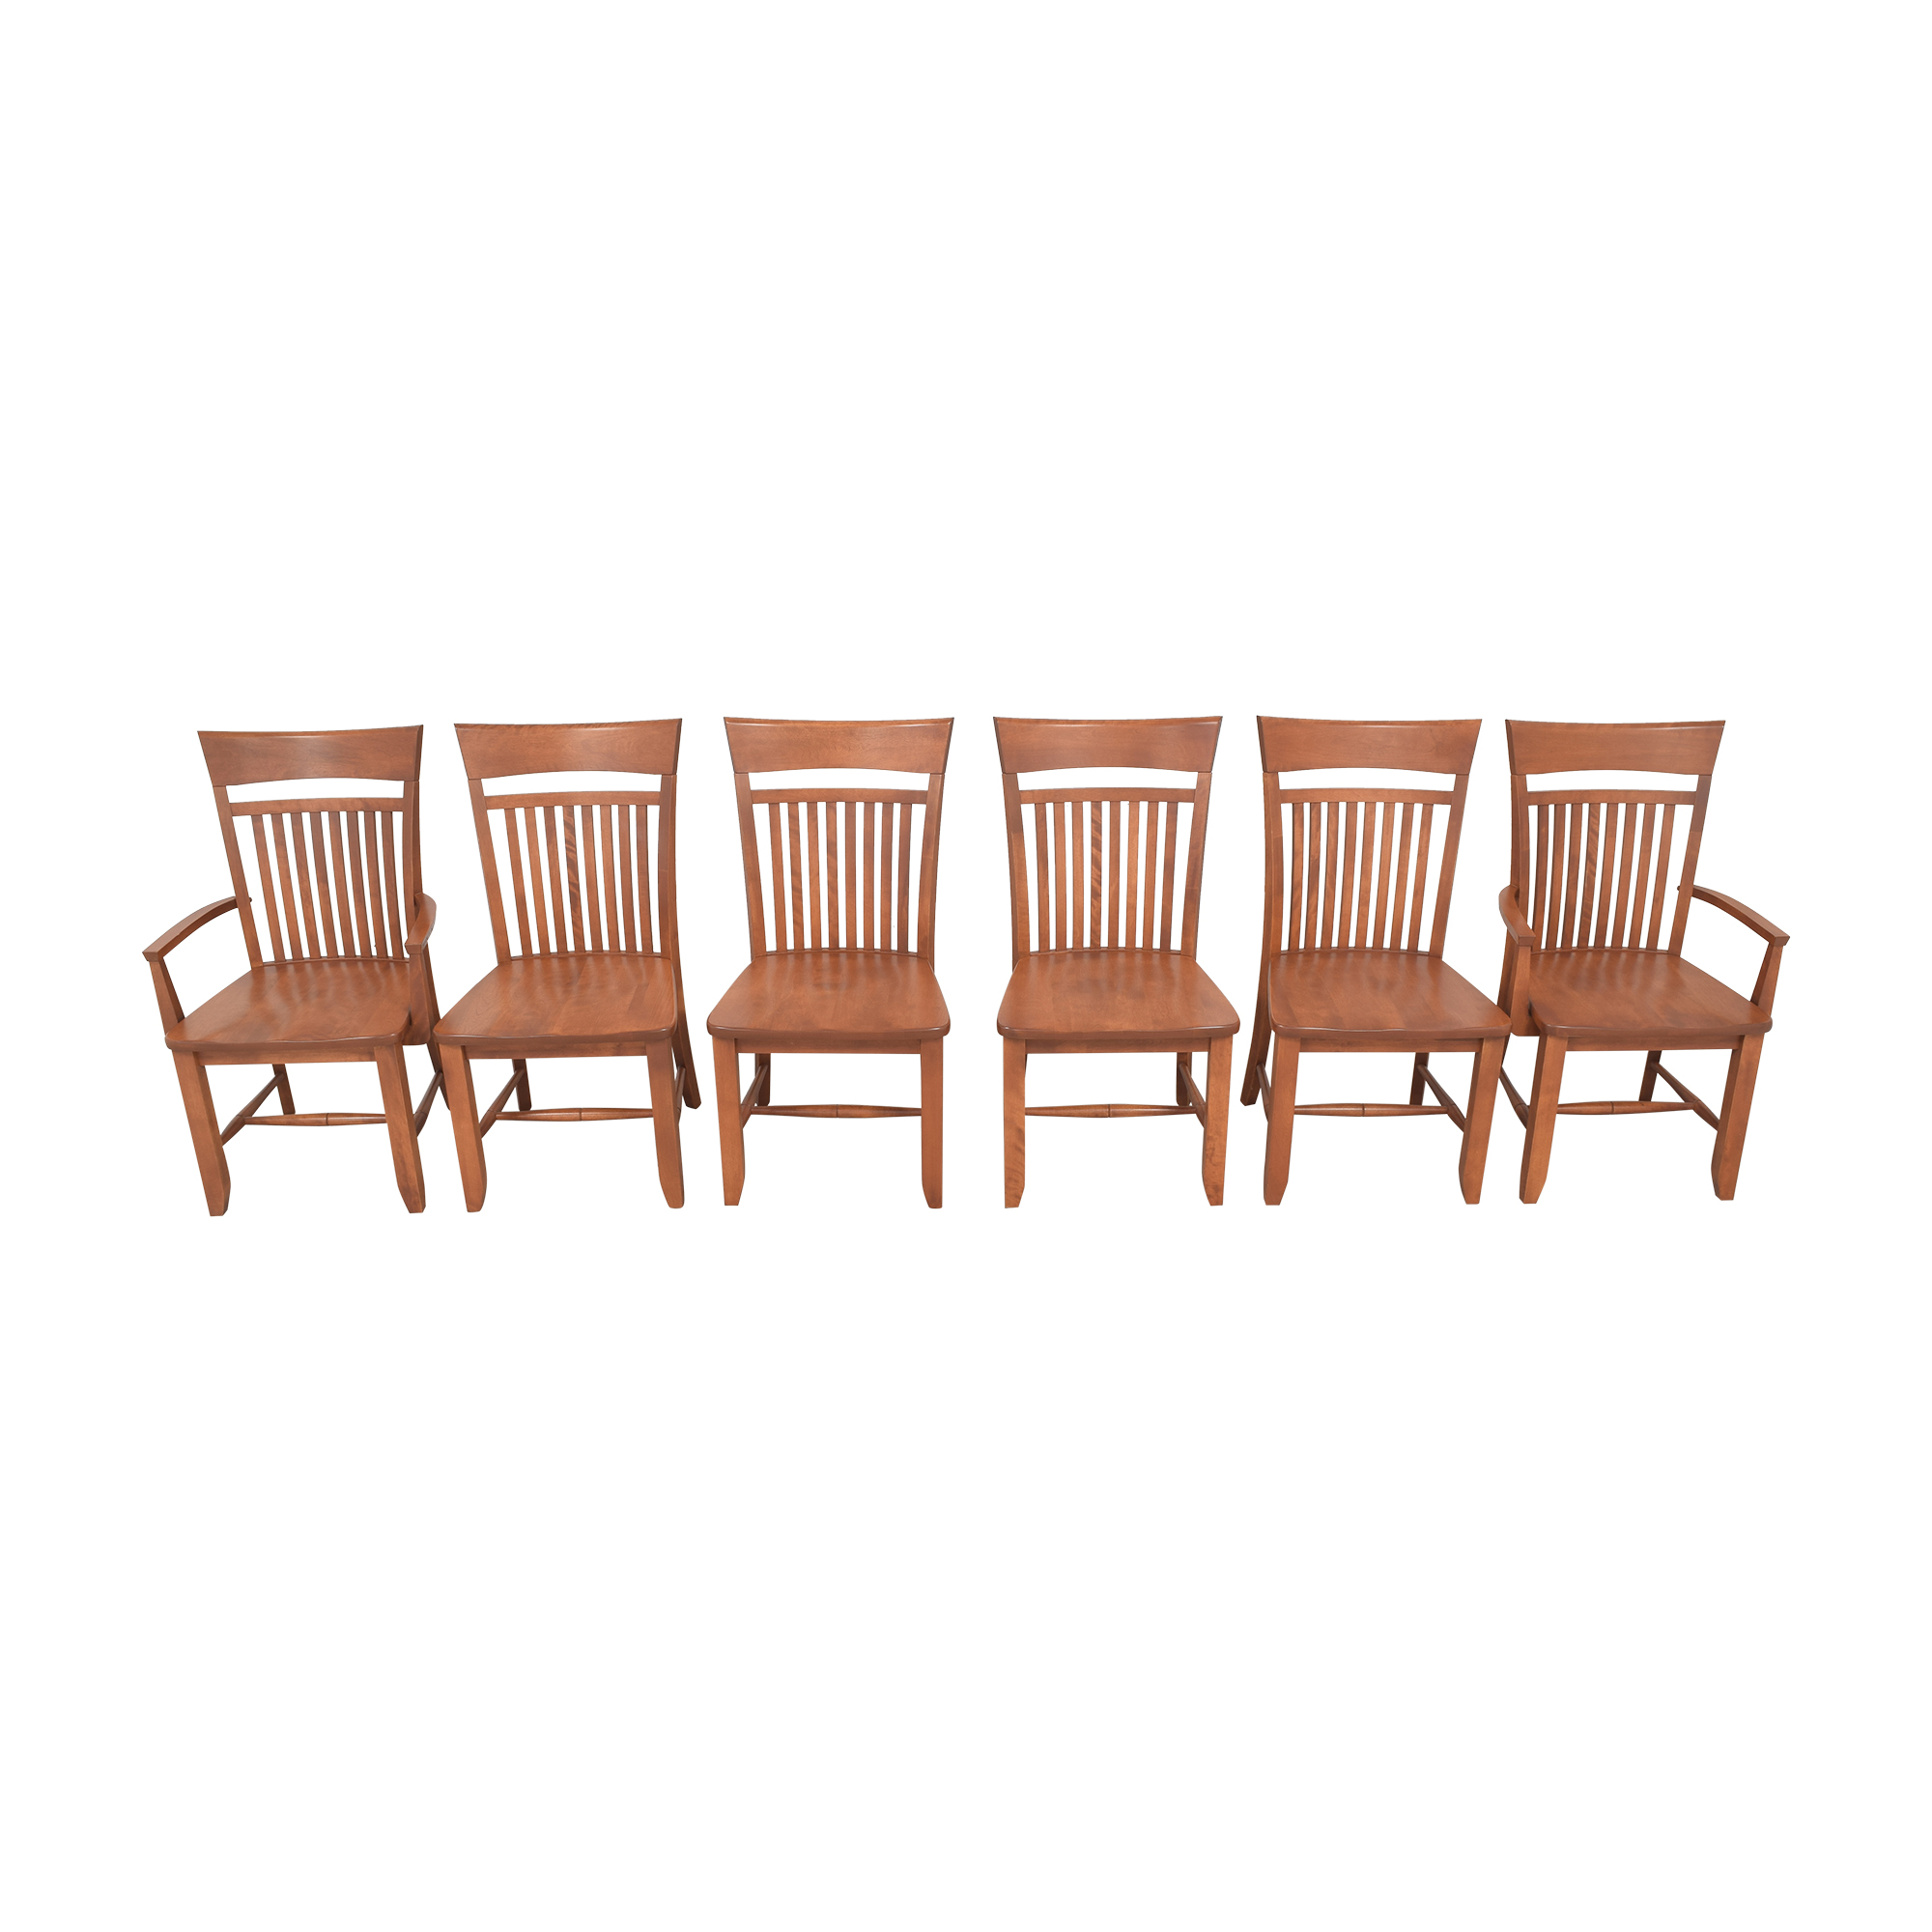 Thomasville Thomasville Dining Chairs used